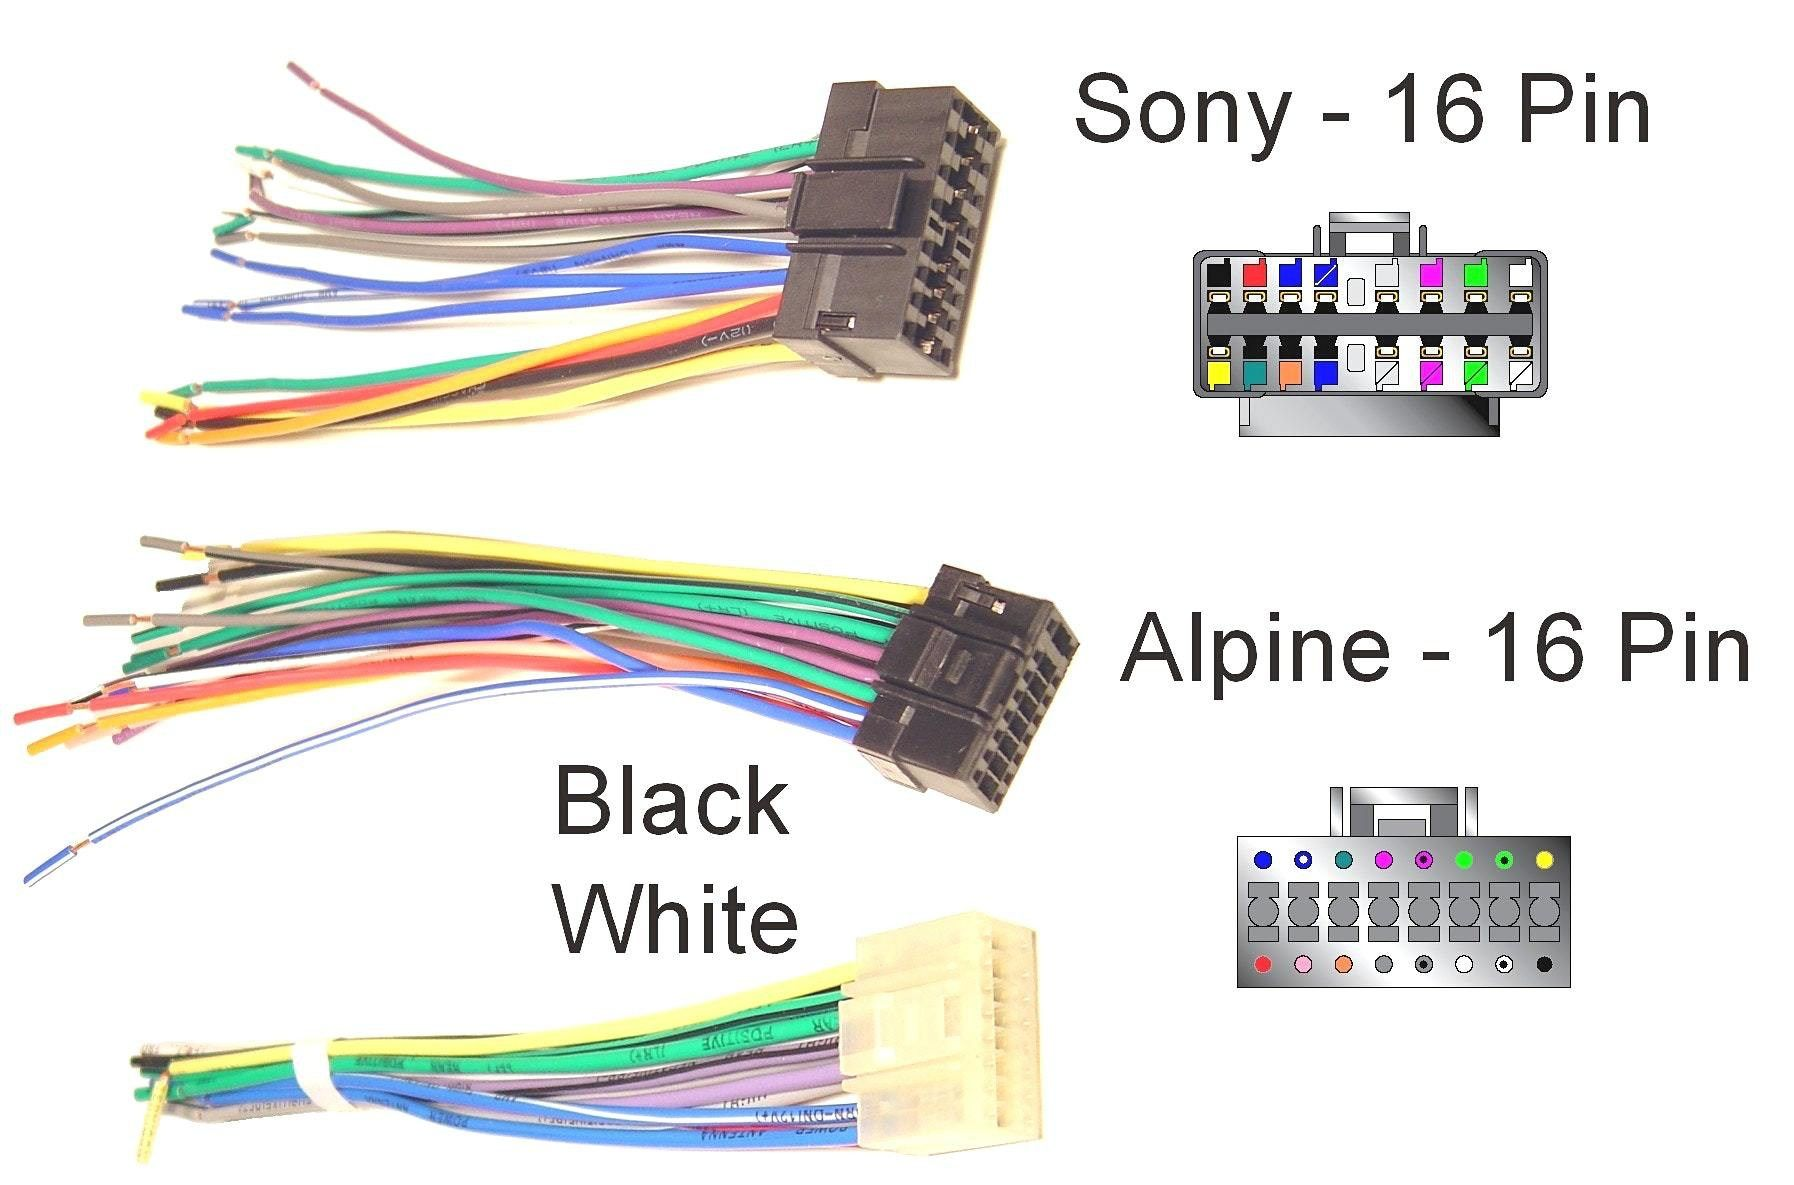 Electrical Wiring Diagrams For Cars Sony car stereo, Car